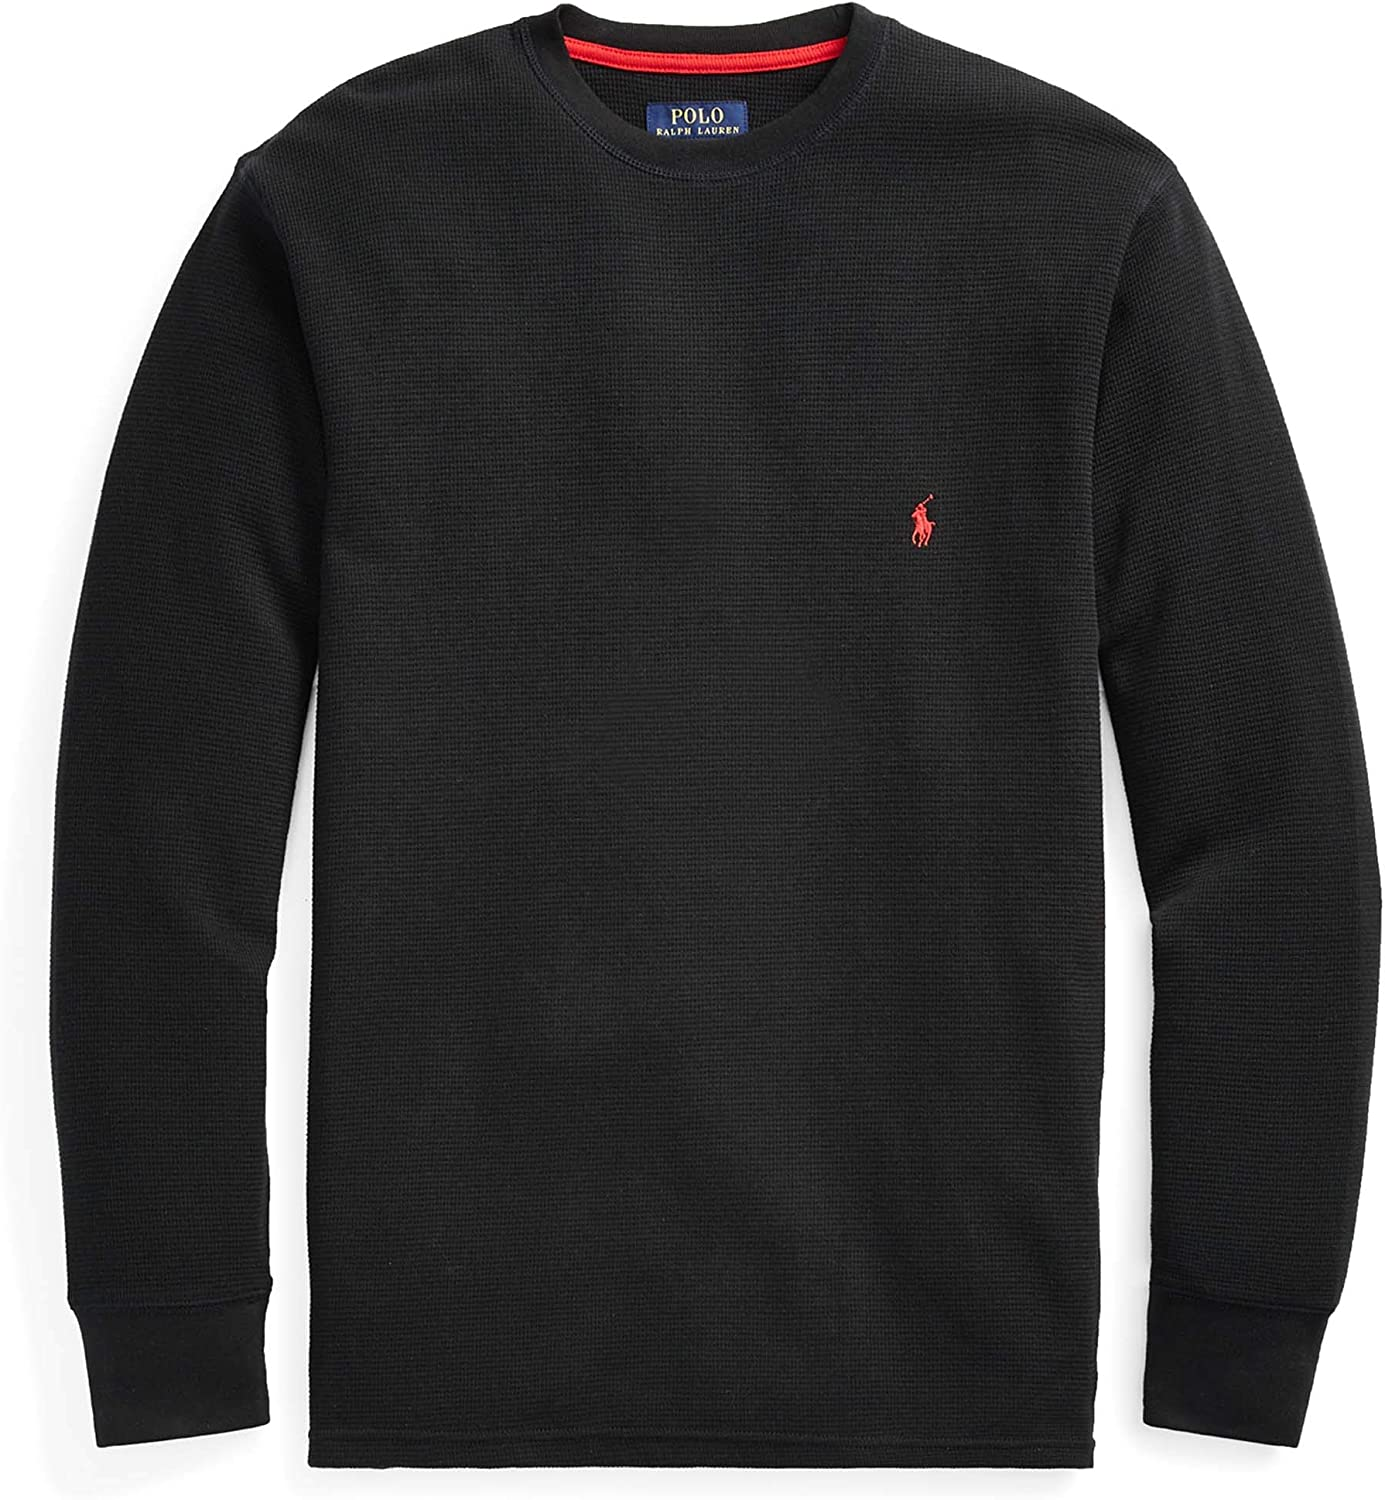 Men/'s $50 POLO-RALPH LAUREN Black Pullover Jersey Hooded T-Shirt XL red Pony